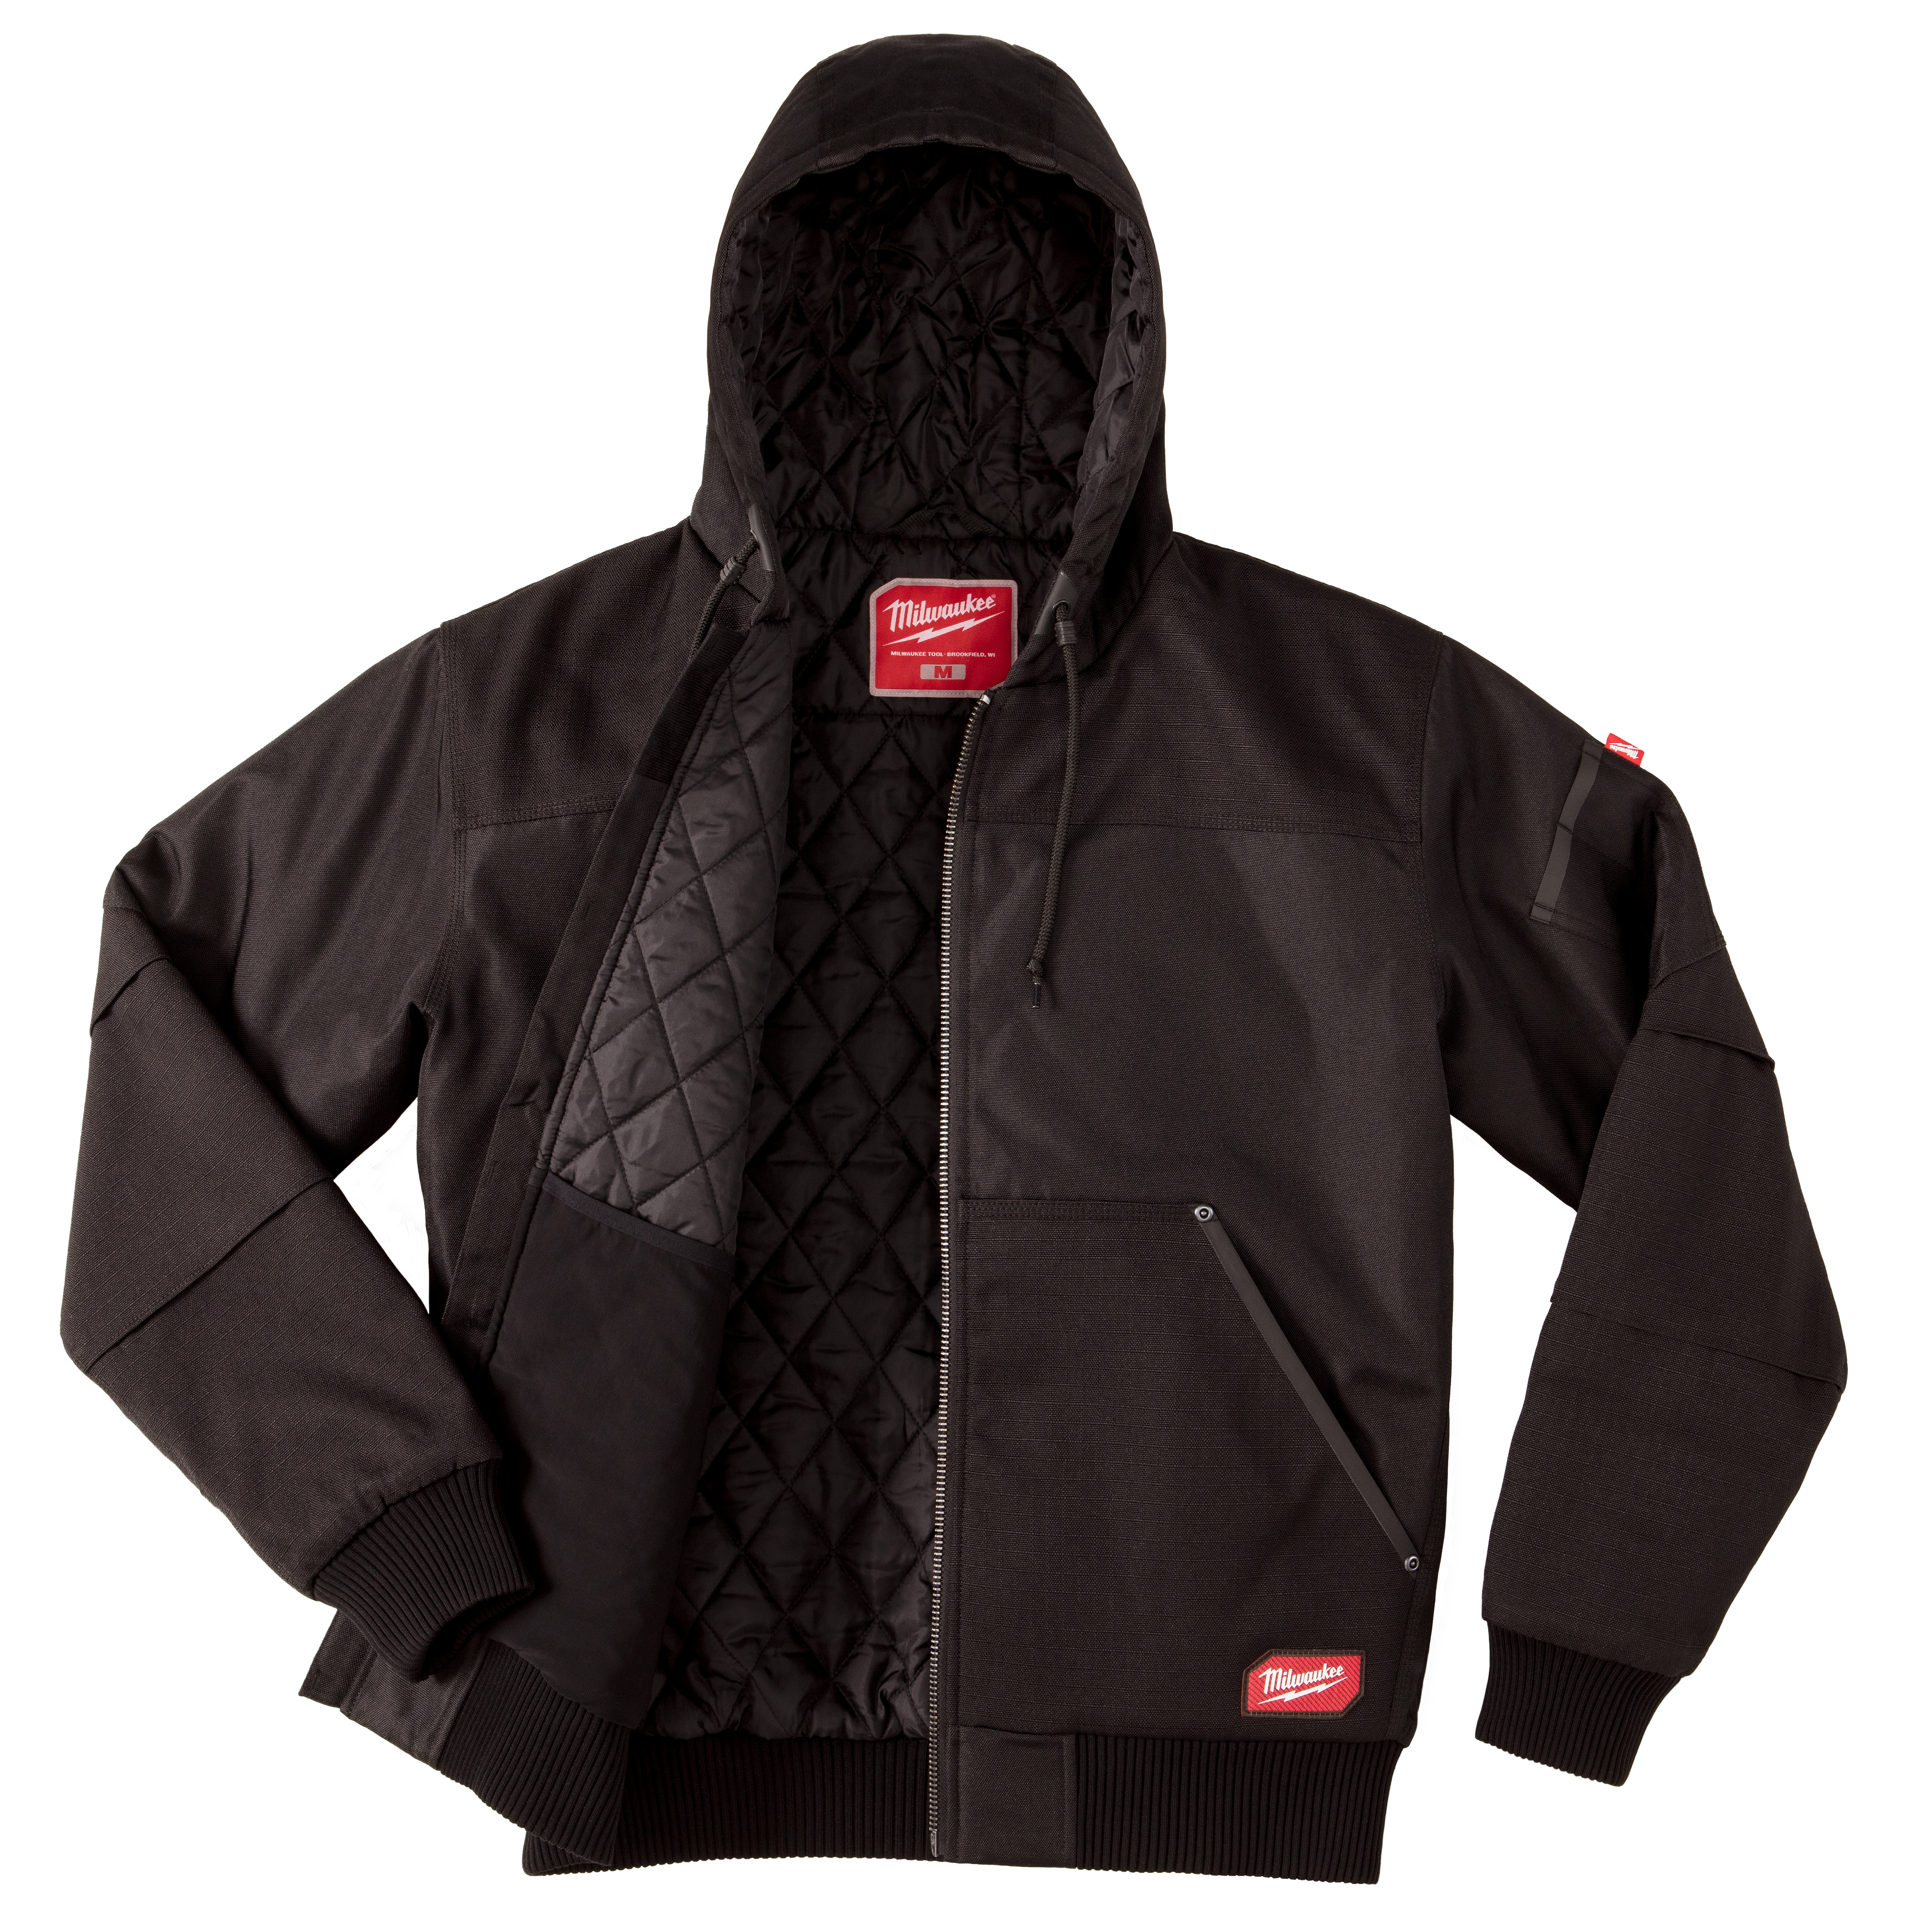 Milwaukee® GRIDIRON™ 254B-S Hooded Jacket, Black, Ripstop Polyester, 38 to 40 in Chest, Resists: Abrasion, Tear, Water and Wind